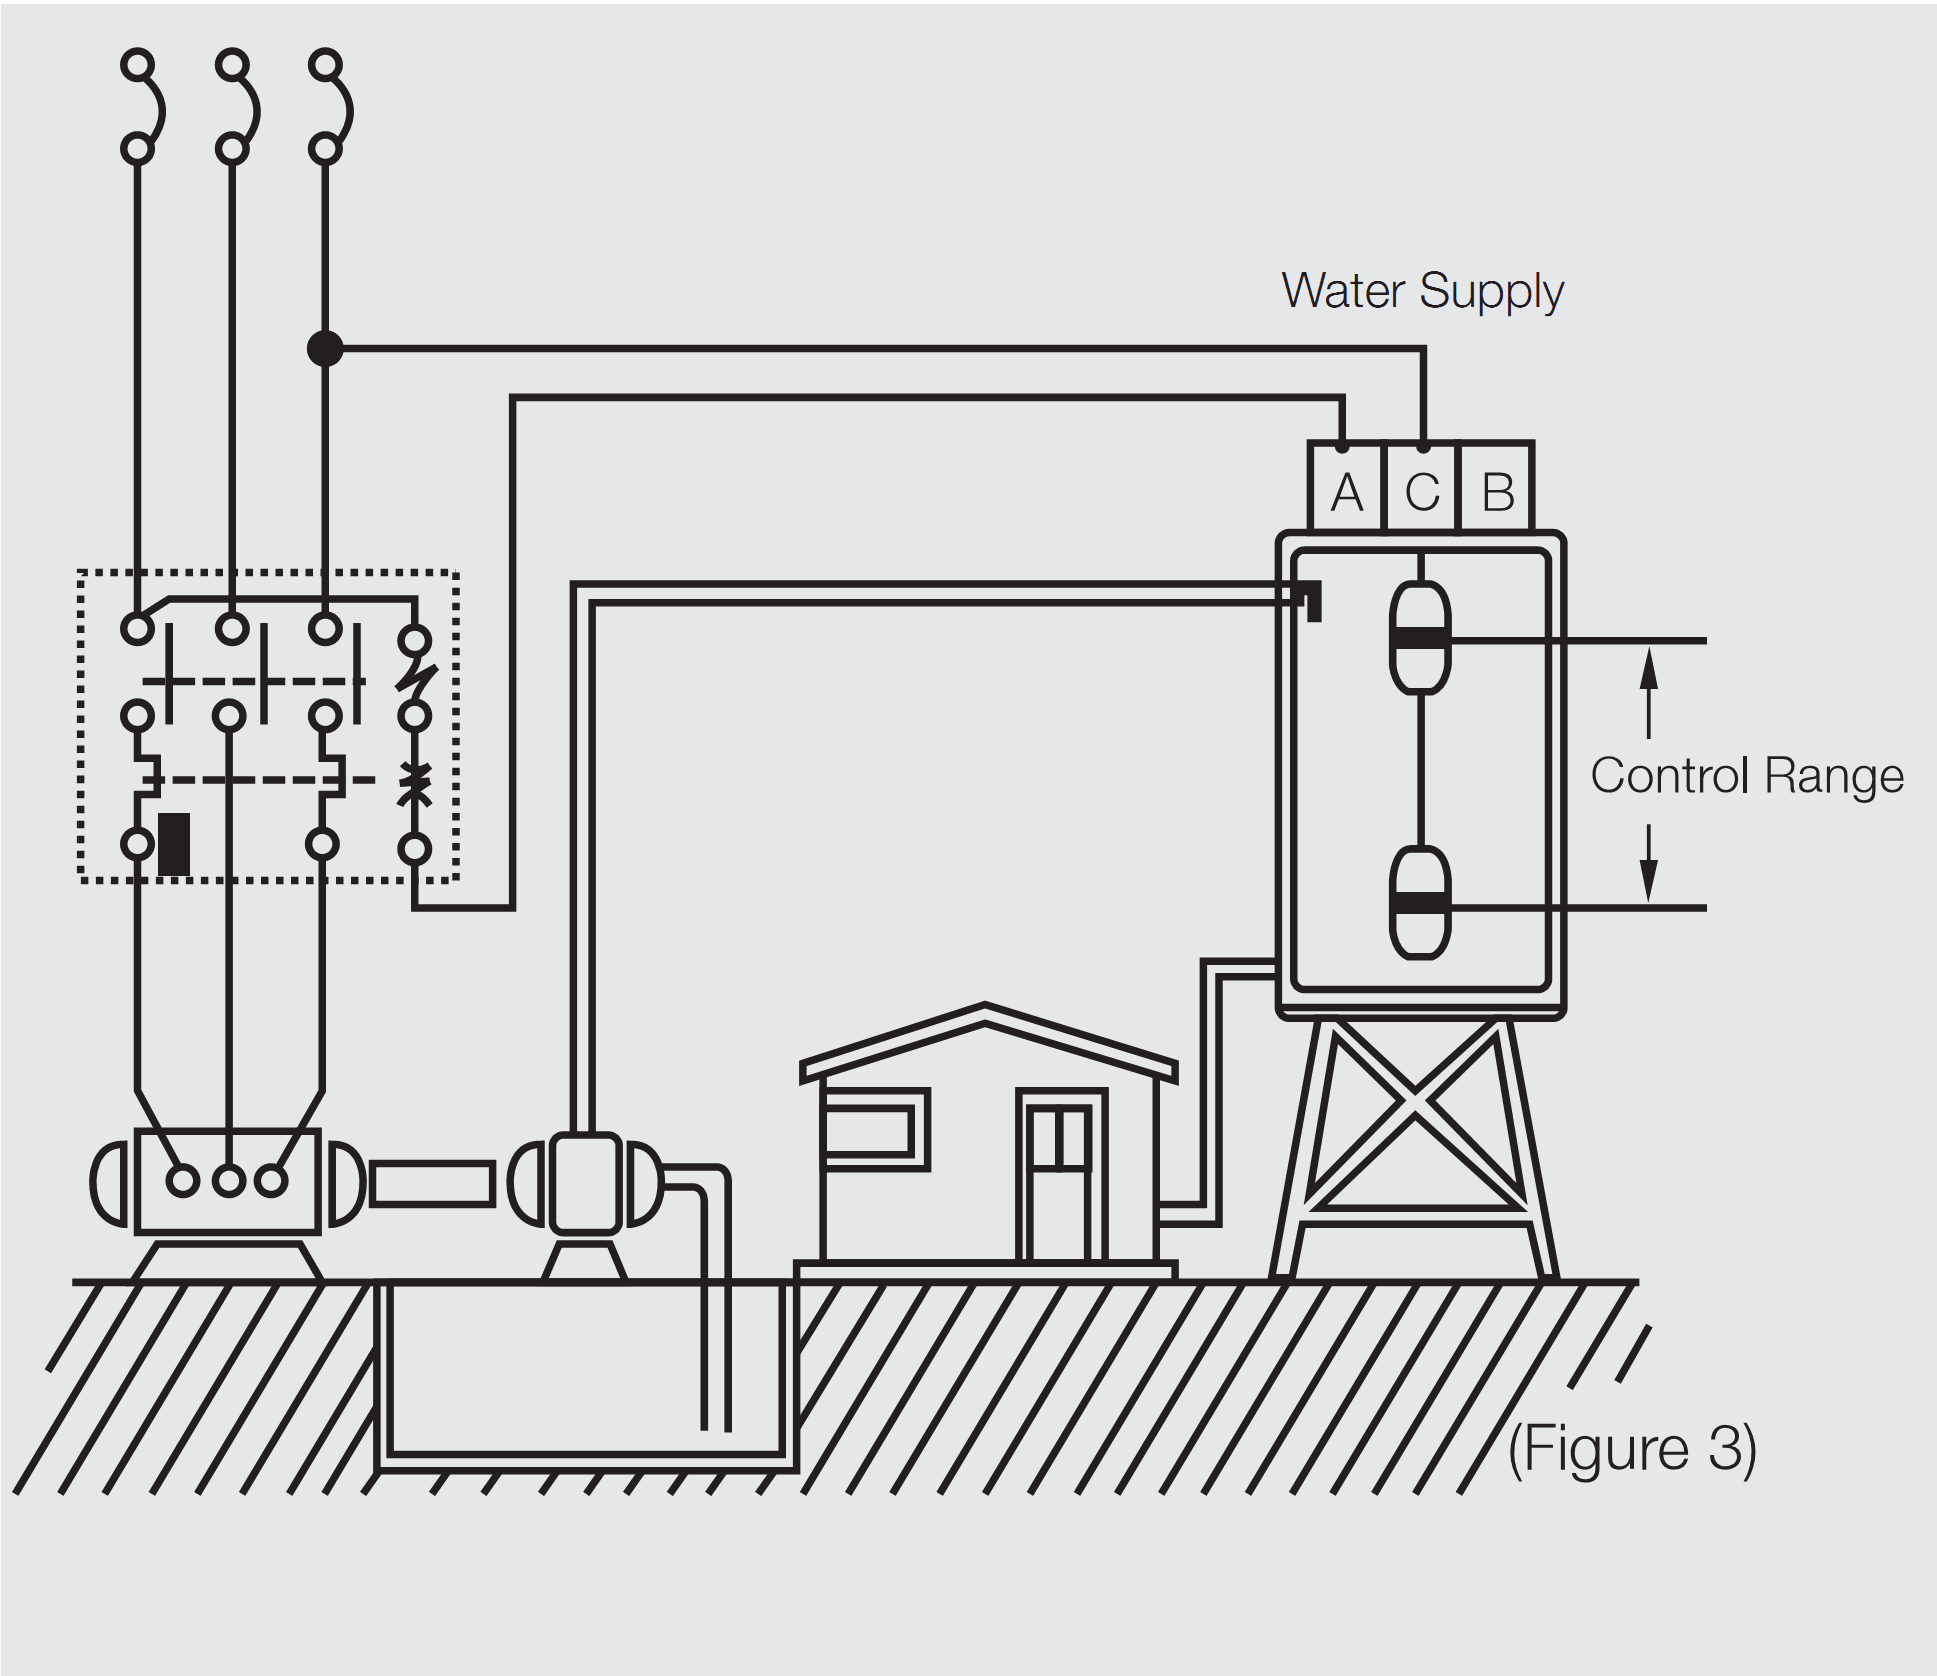 Level Switch Diagram Simple Wiring Schema Sump Pump Float Liquid Wiratama Flow Meter And Technical Part Stock Well